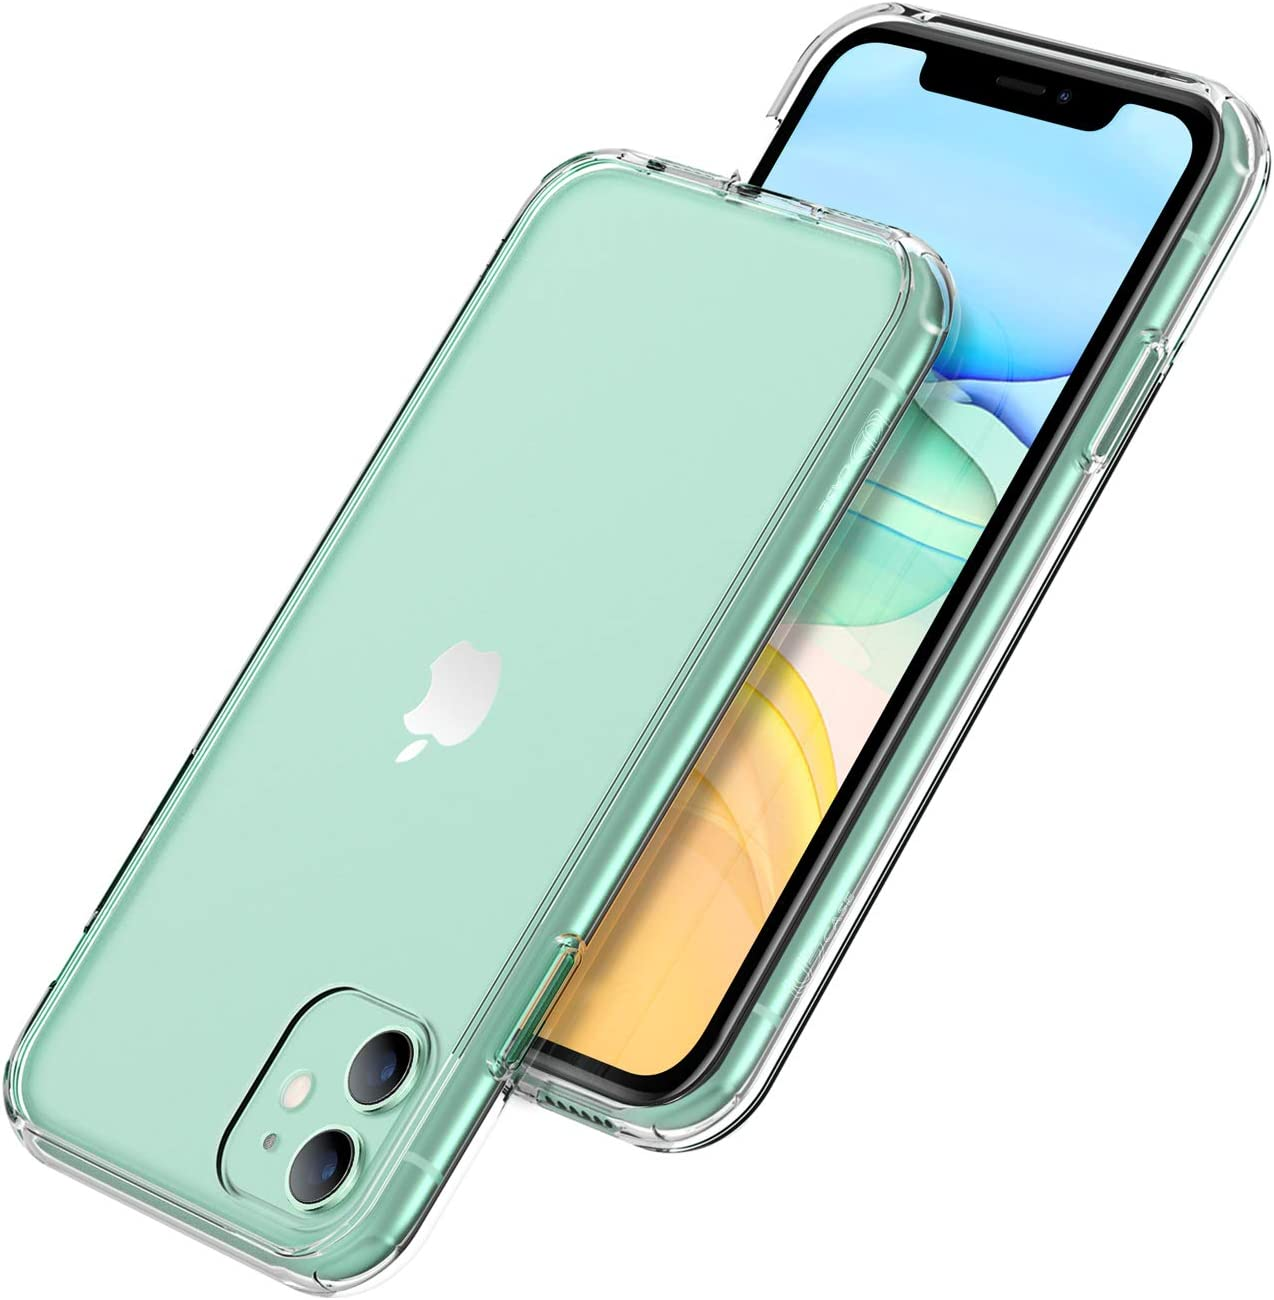 UGT Case Designed for iPhone 11 Case, Shockproof Anti-Watermark Dual Layer Hard PC + TPU Bumper Cover for iPhone 11 Cases 6.1 inch 2019 [Crystal Clear]